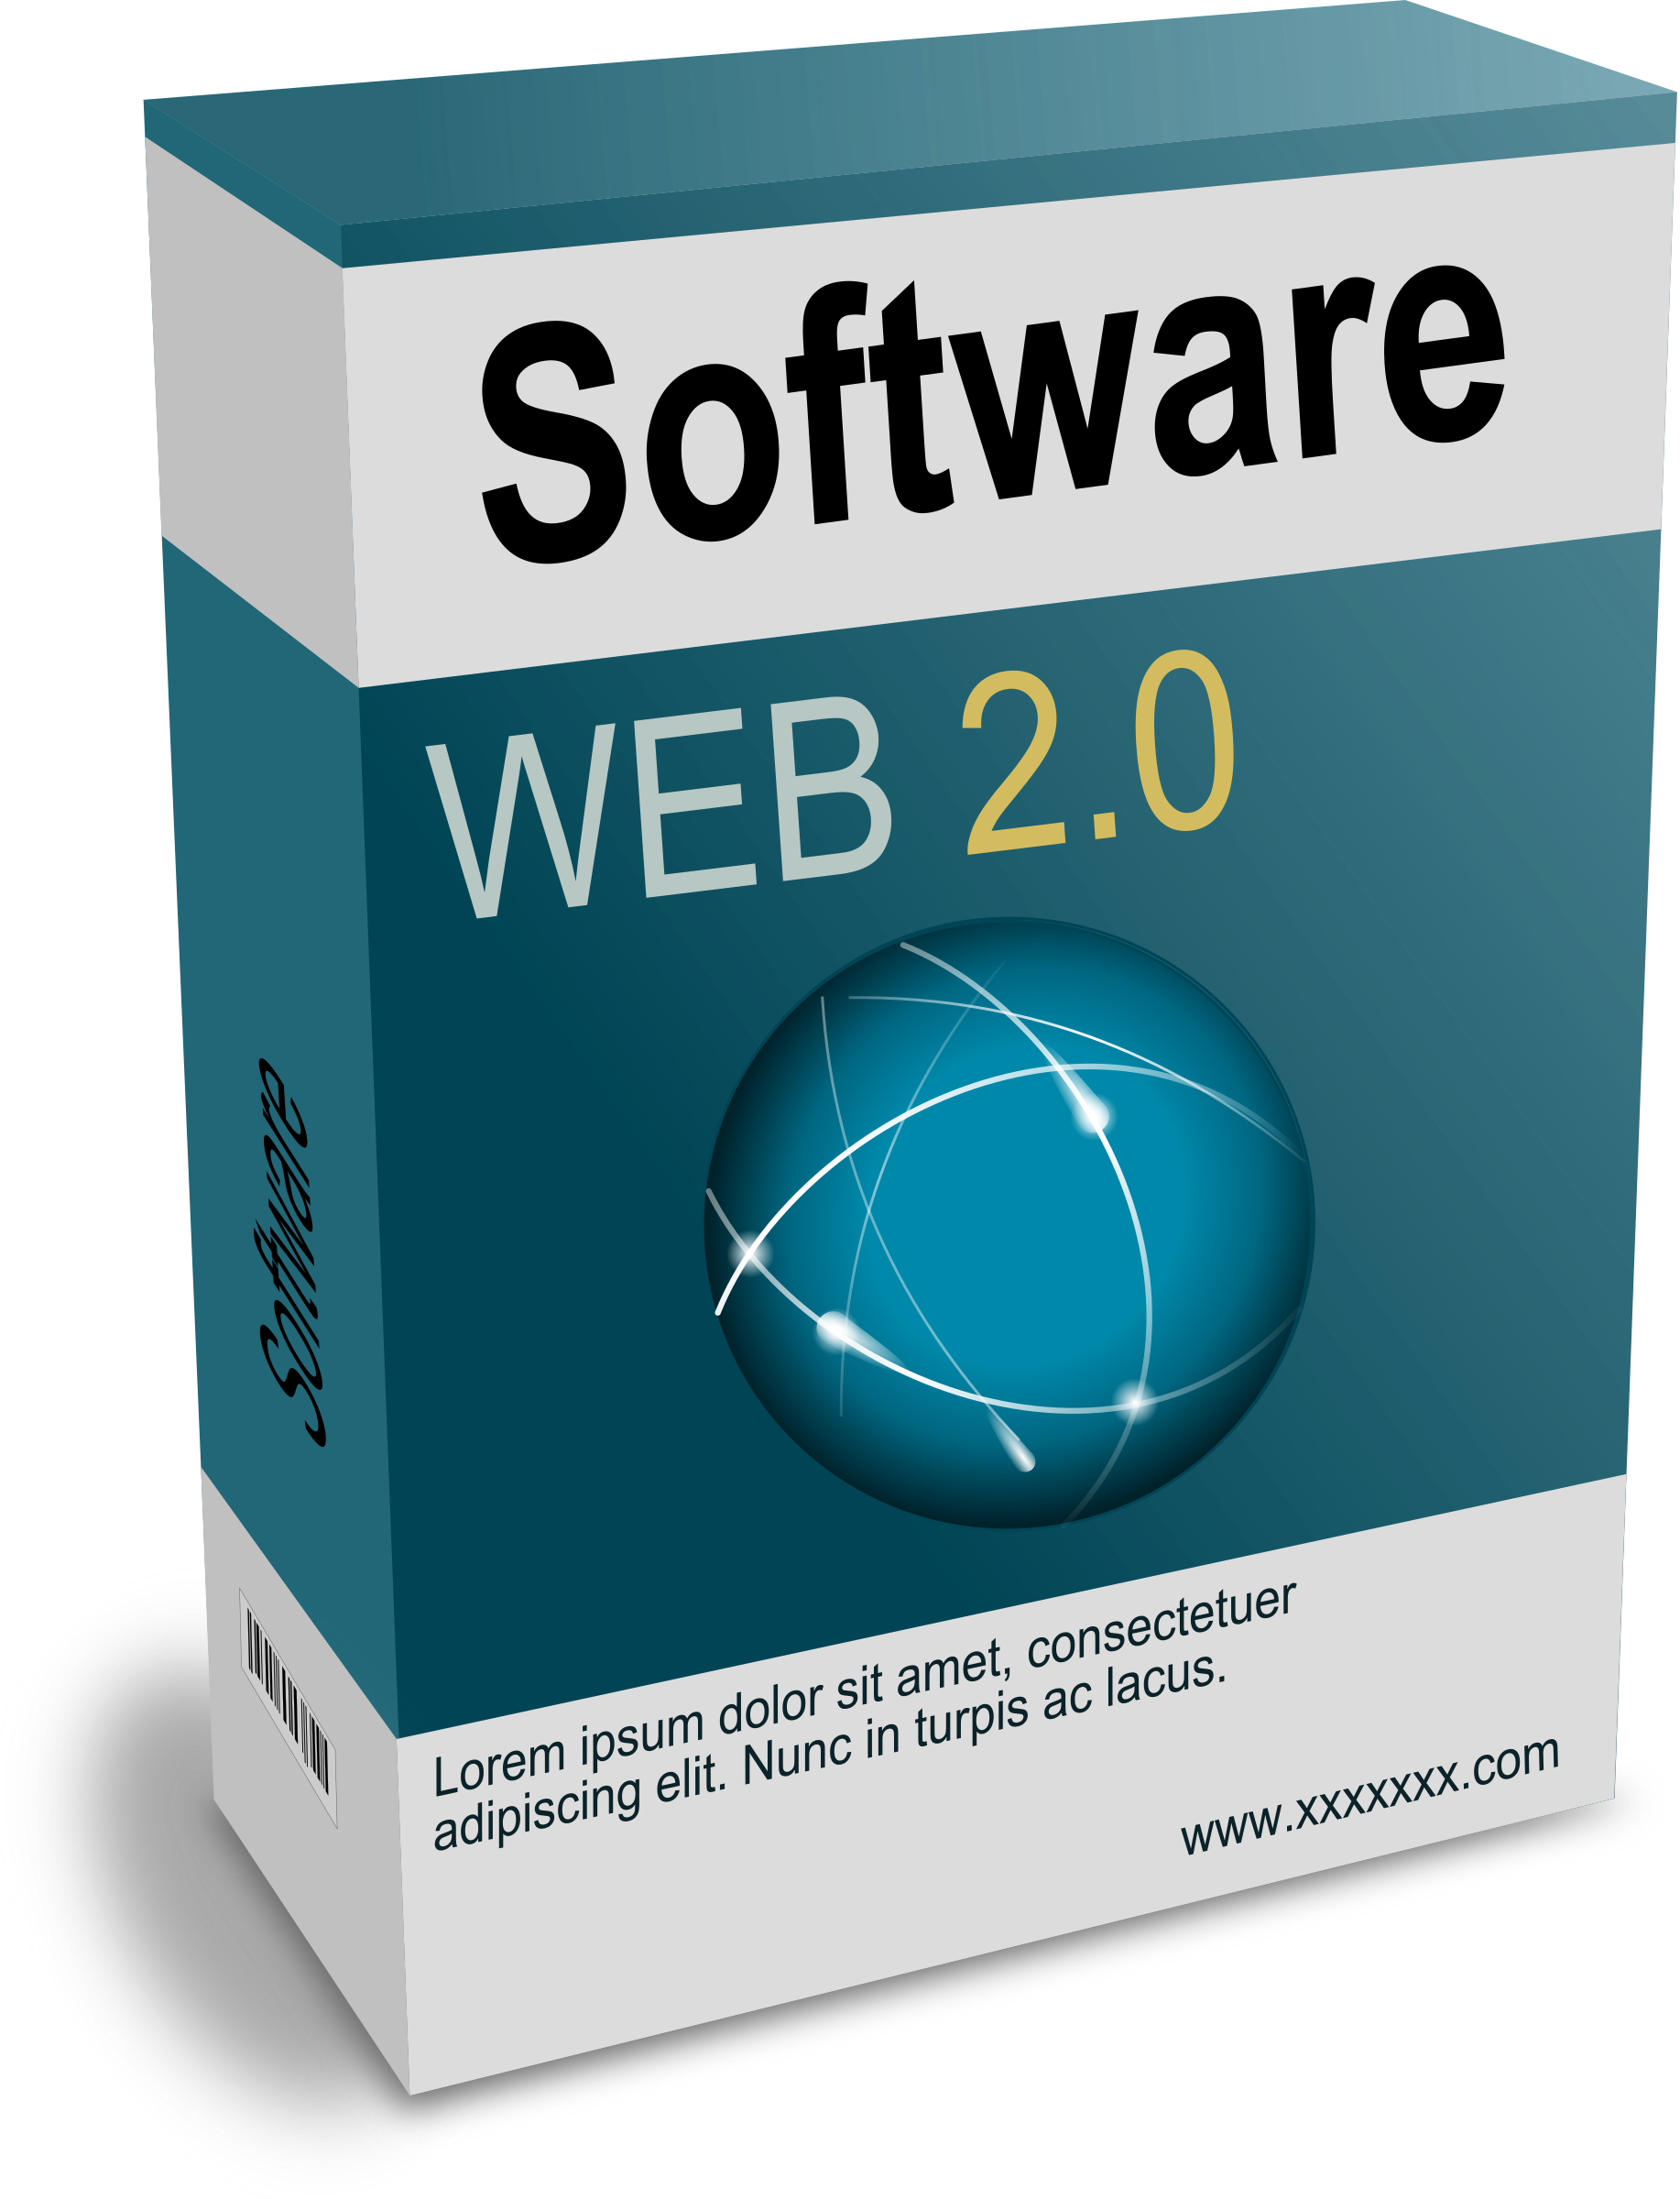 Software Carton Box Web 2.0 (remix) by palomaironique